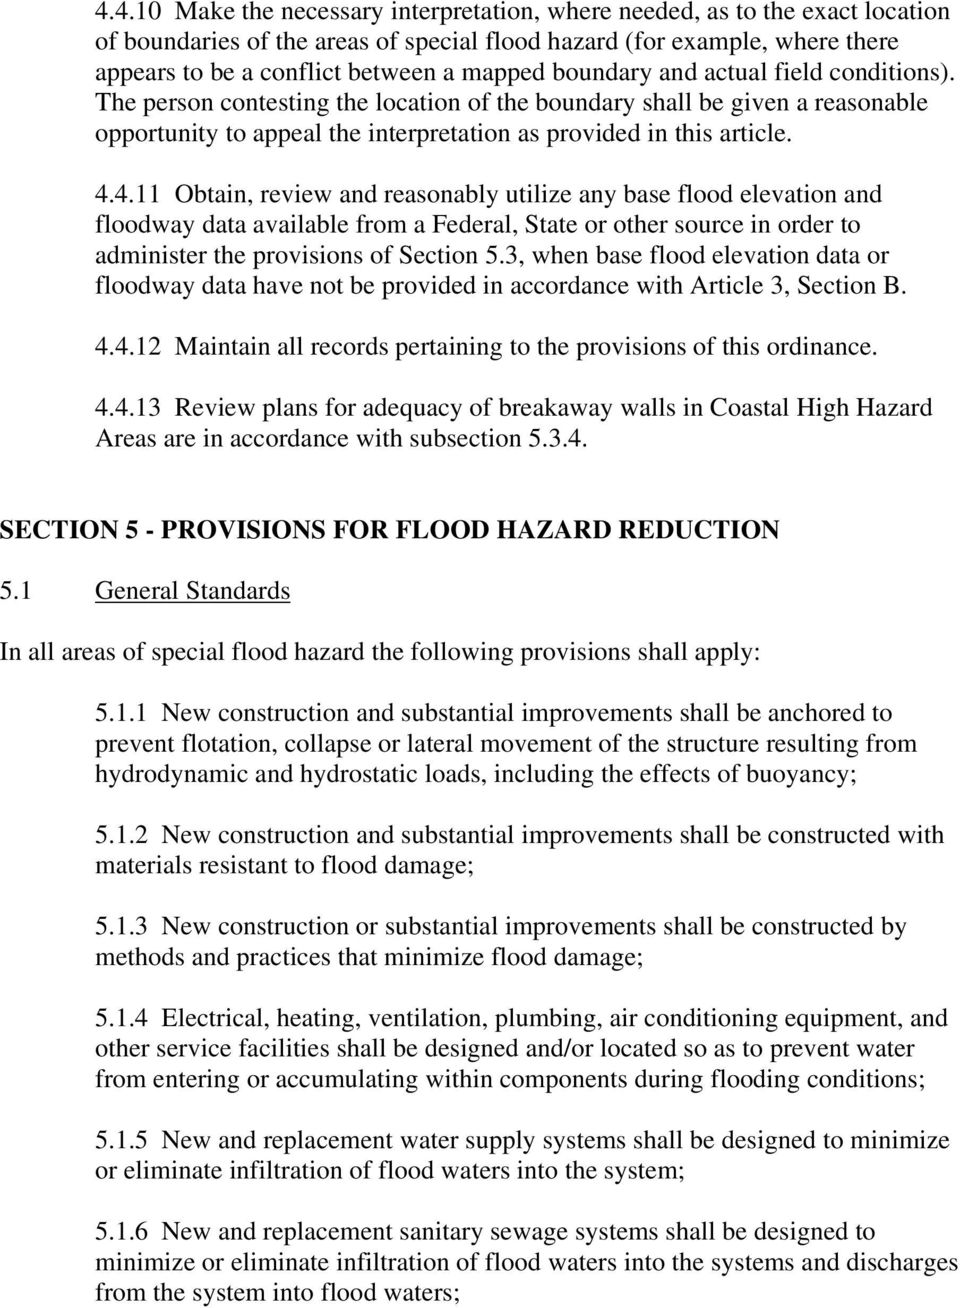 4.11 Obtain, review and reasonably utilize any base flood elevation and floodway data available from a Federal, State or other source in order to administer the provisions of Section 5.